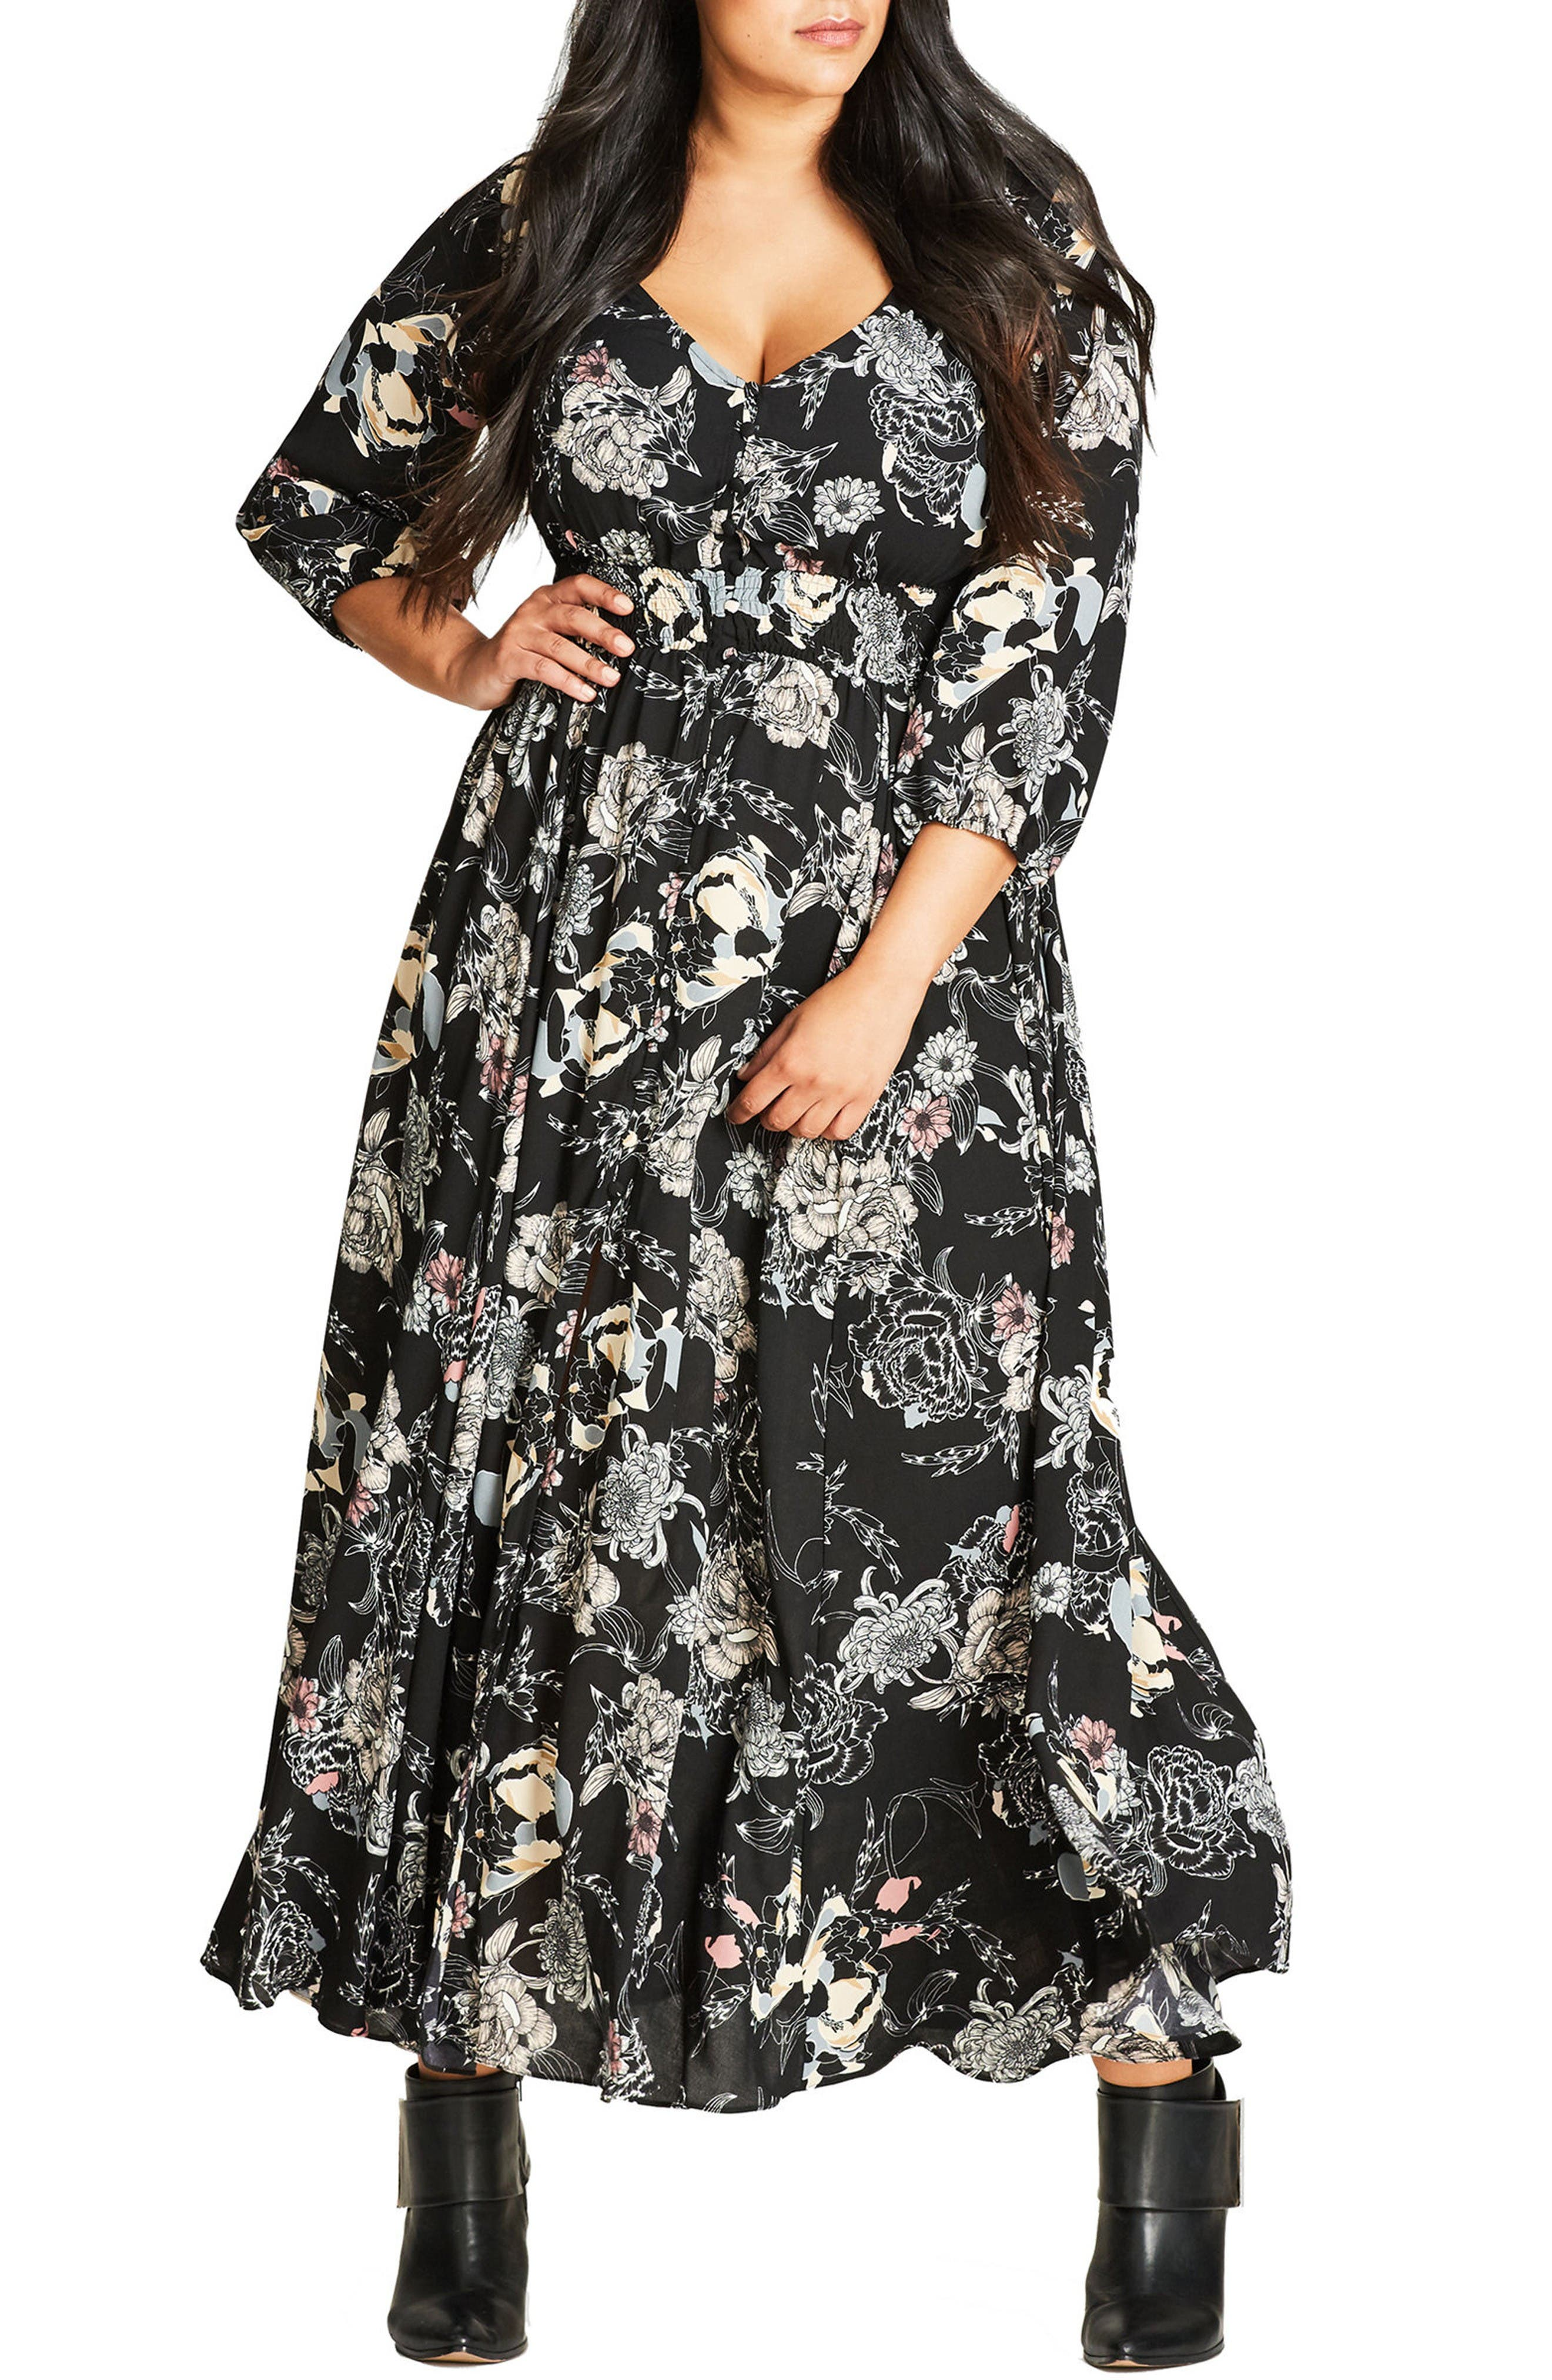 Alternate Image 1 Selected - City Chic Floral Maxi Dress (Plus Size)